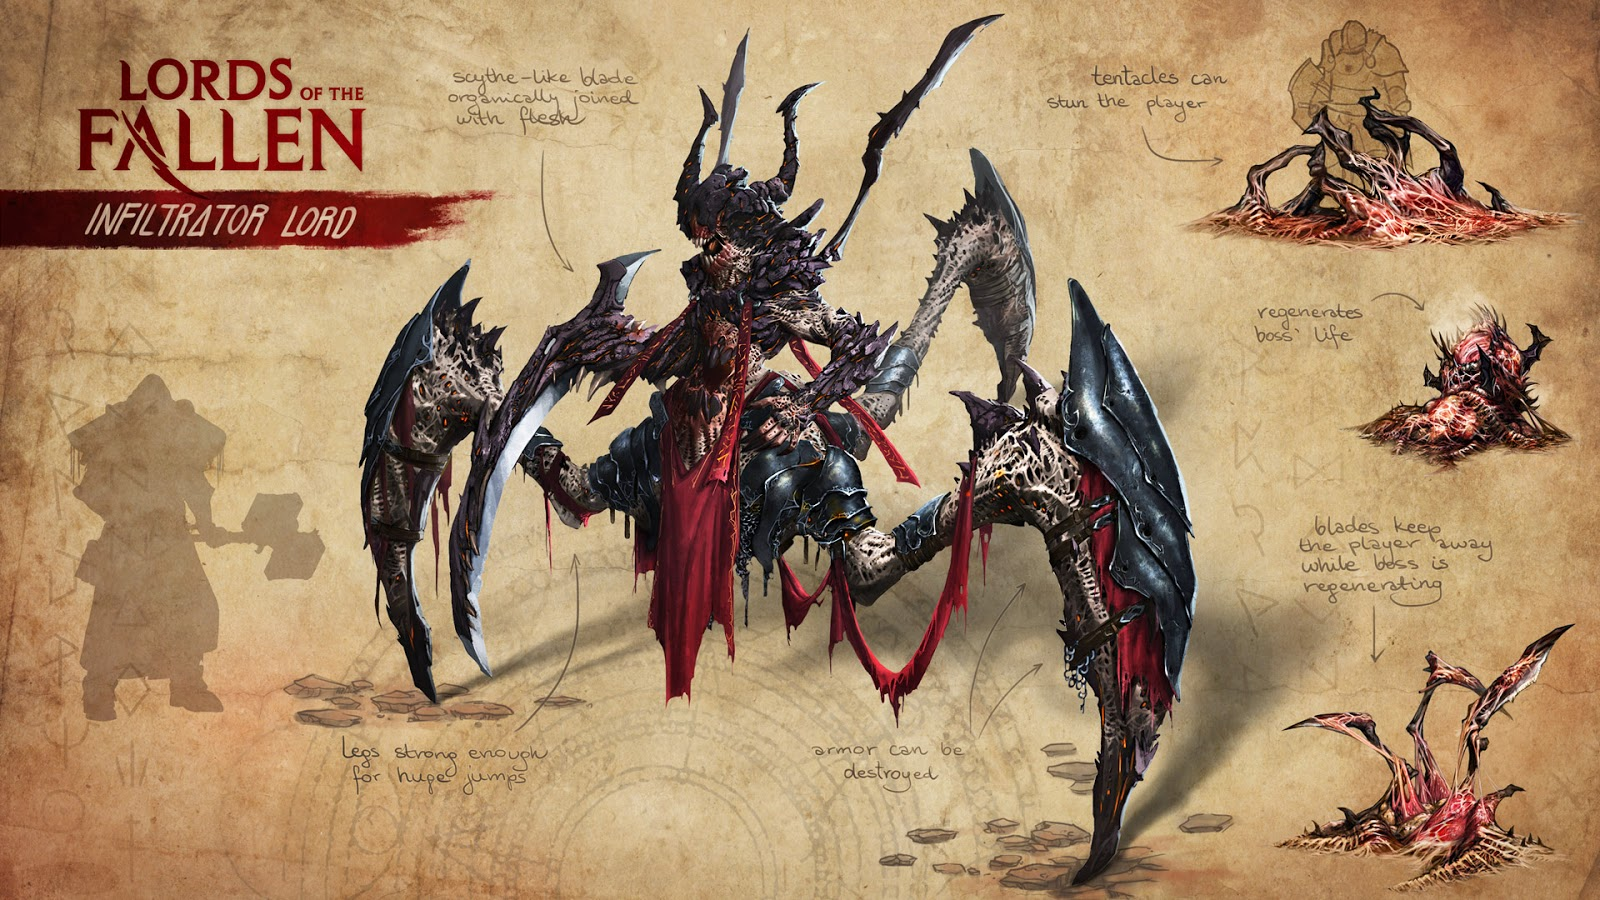 Lords of the Fallen Game Concept « HD Game Wallpapers - lords of the fallen game concept wallpapers